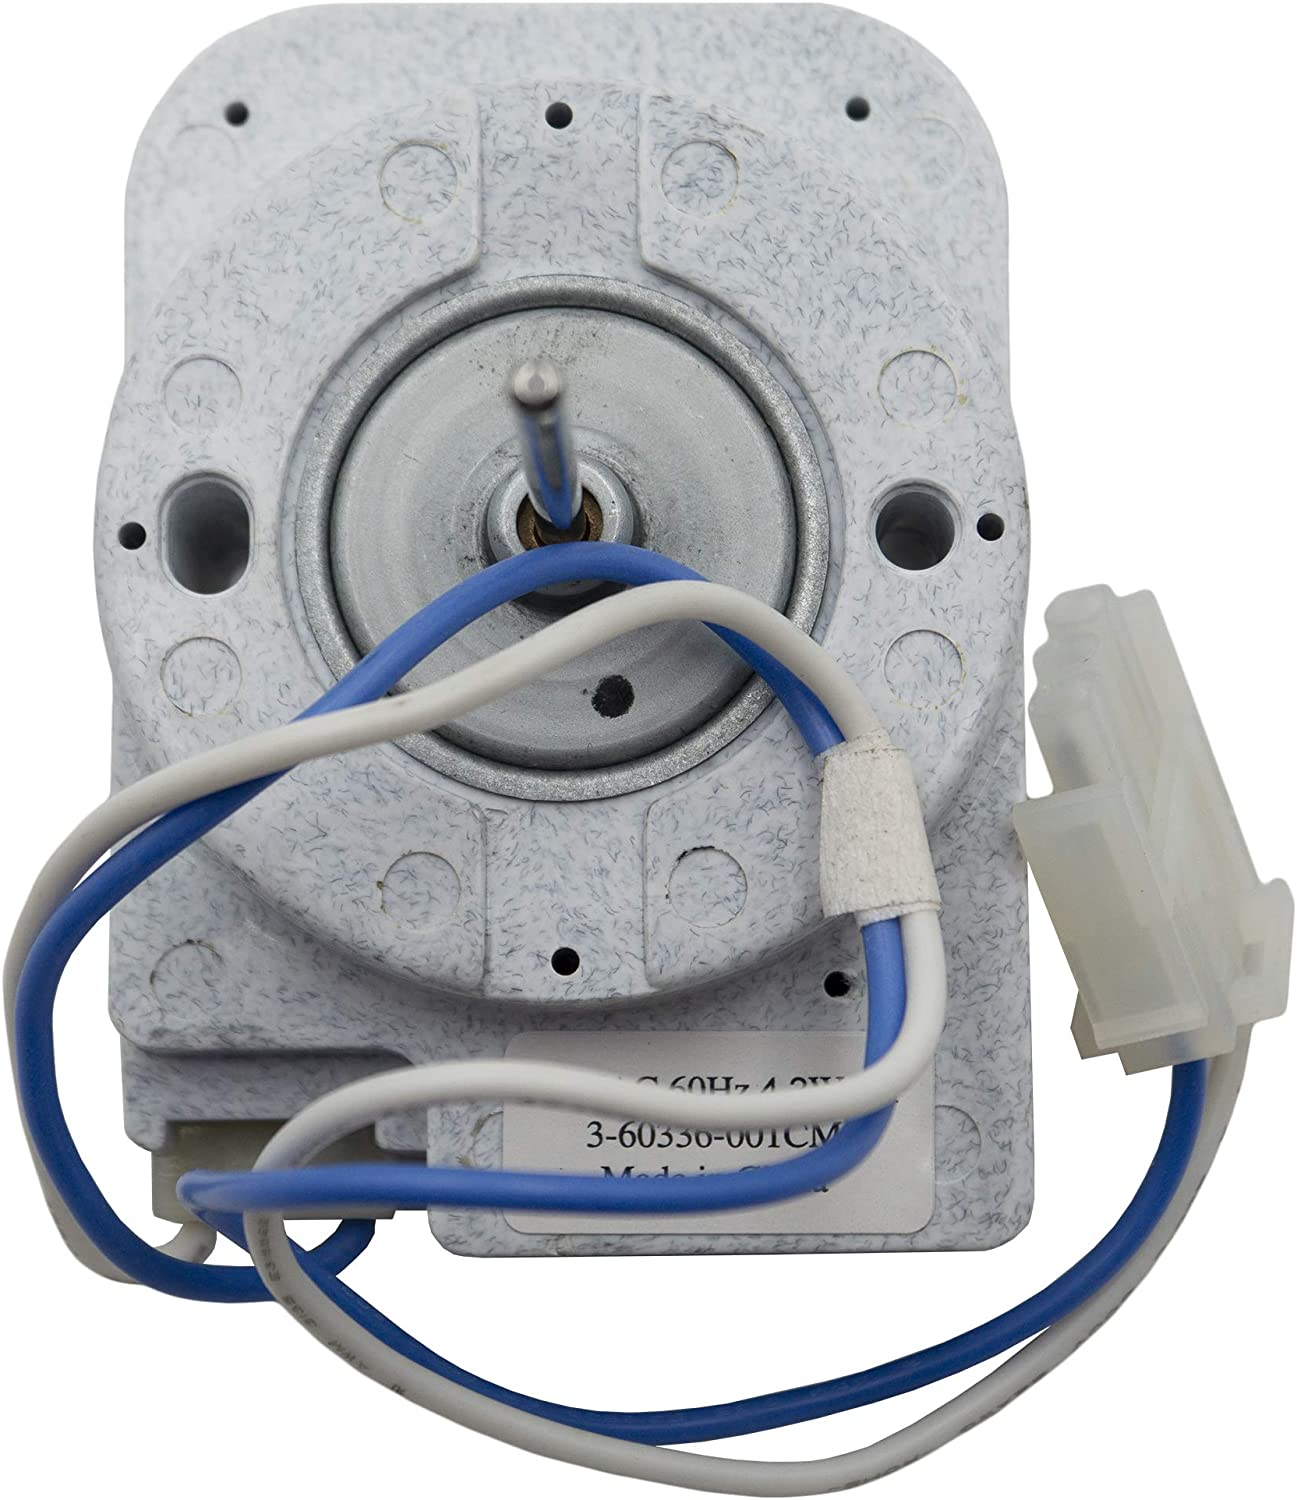 Supplying Demand 3-60336-001 Refrigerator Evaporator Fan Motor Compatible With Whirlpool